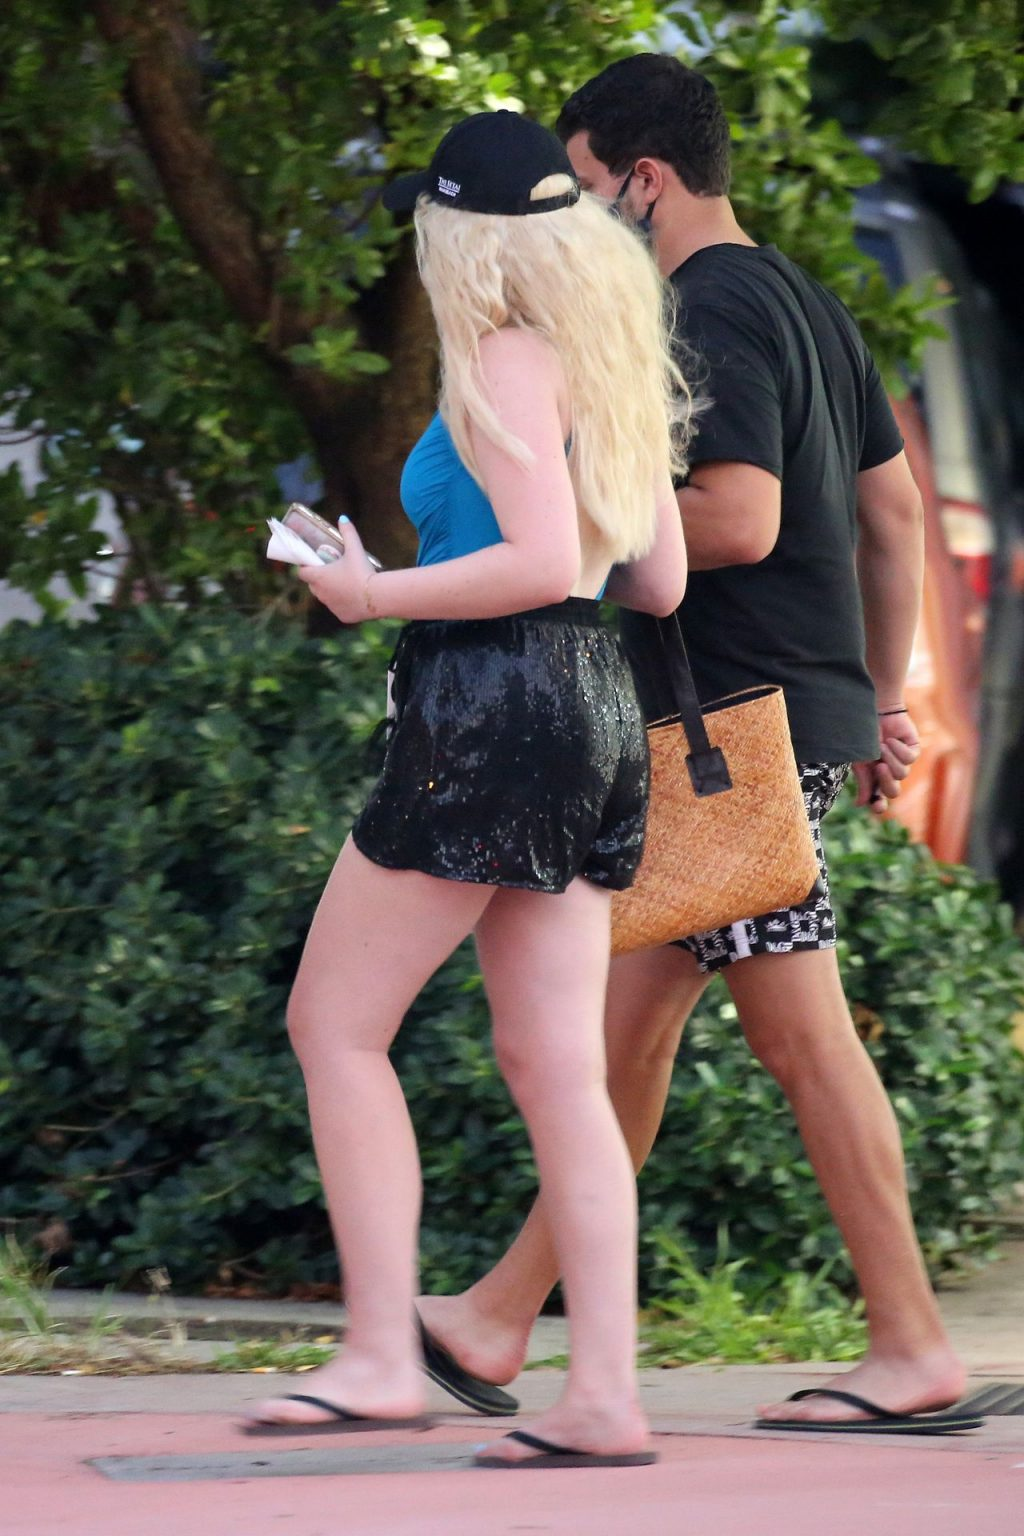 Tiffany Trump Wears a Blue Swimsuit and Relaxes on the Beach in Miami (96 Photos)